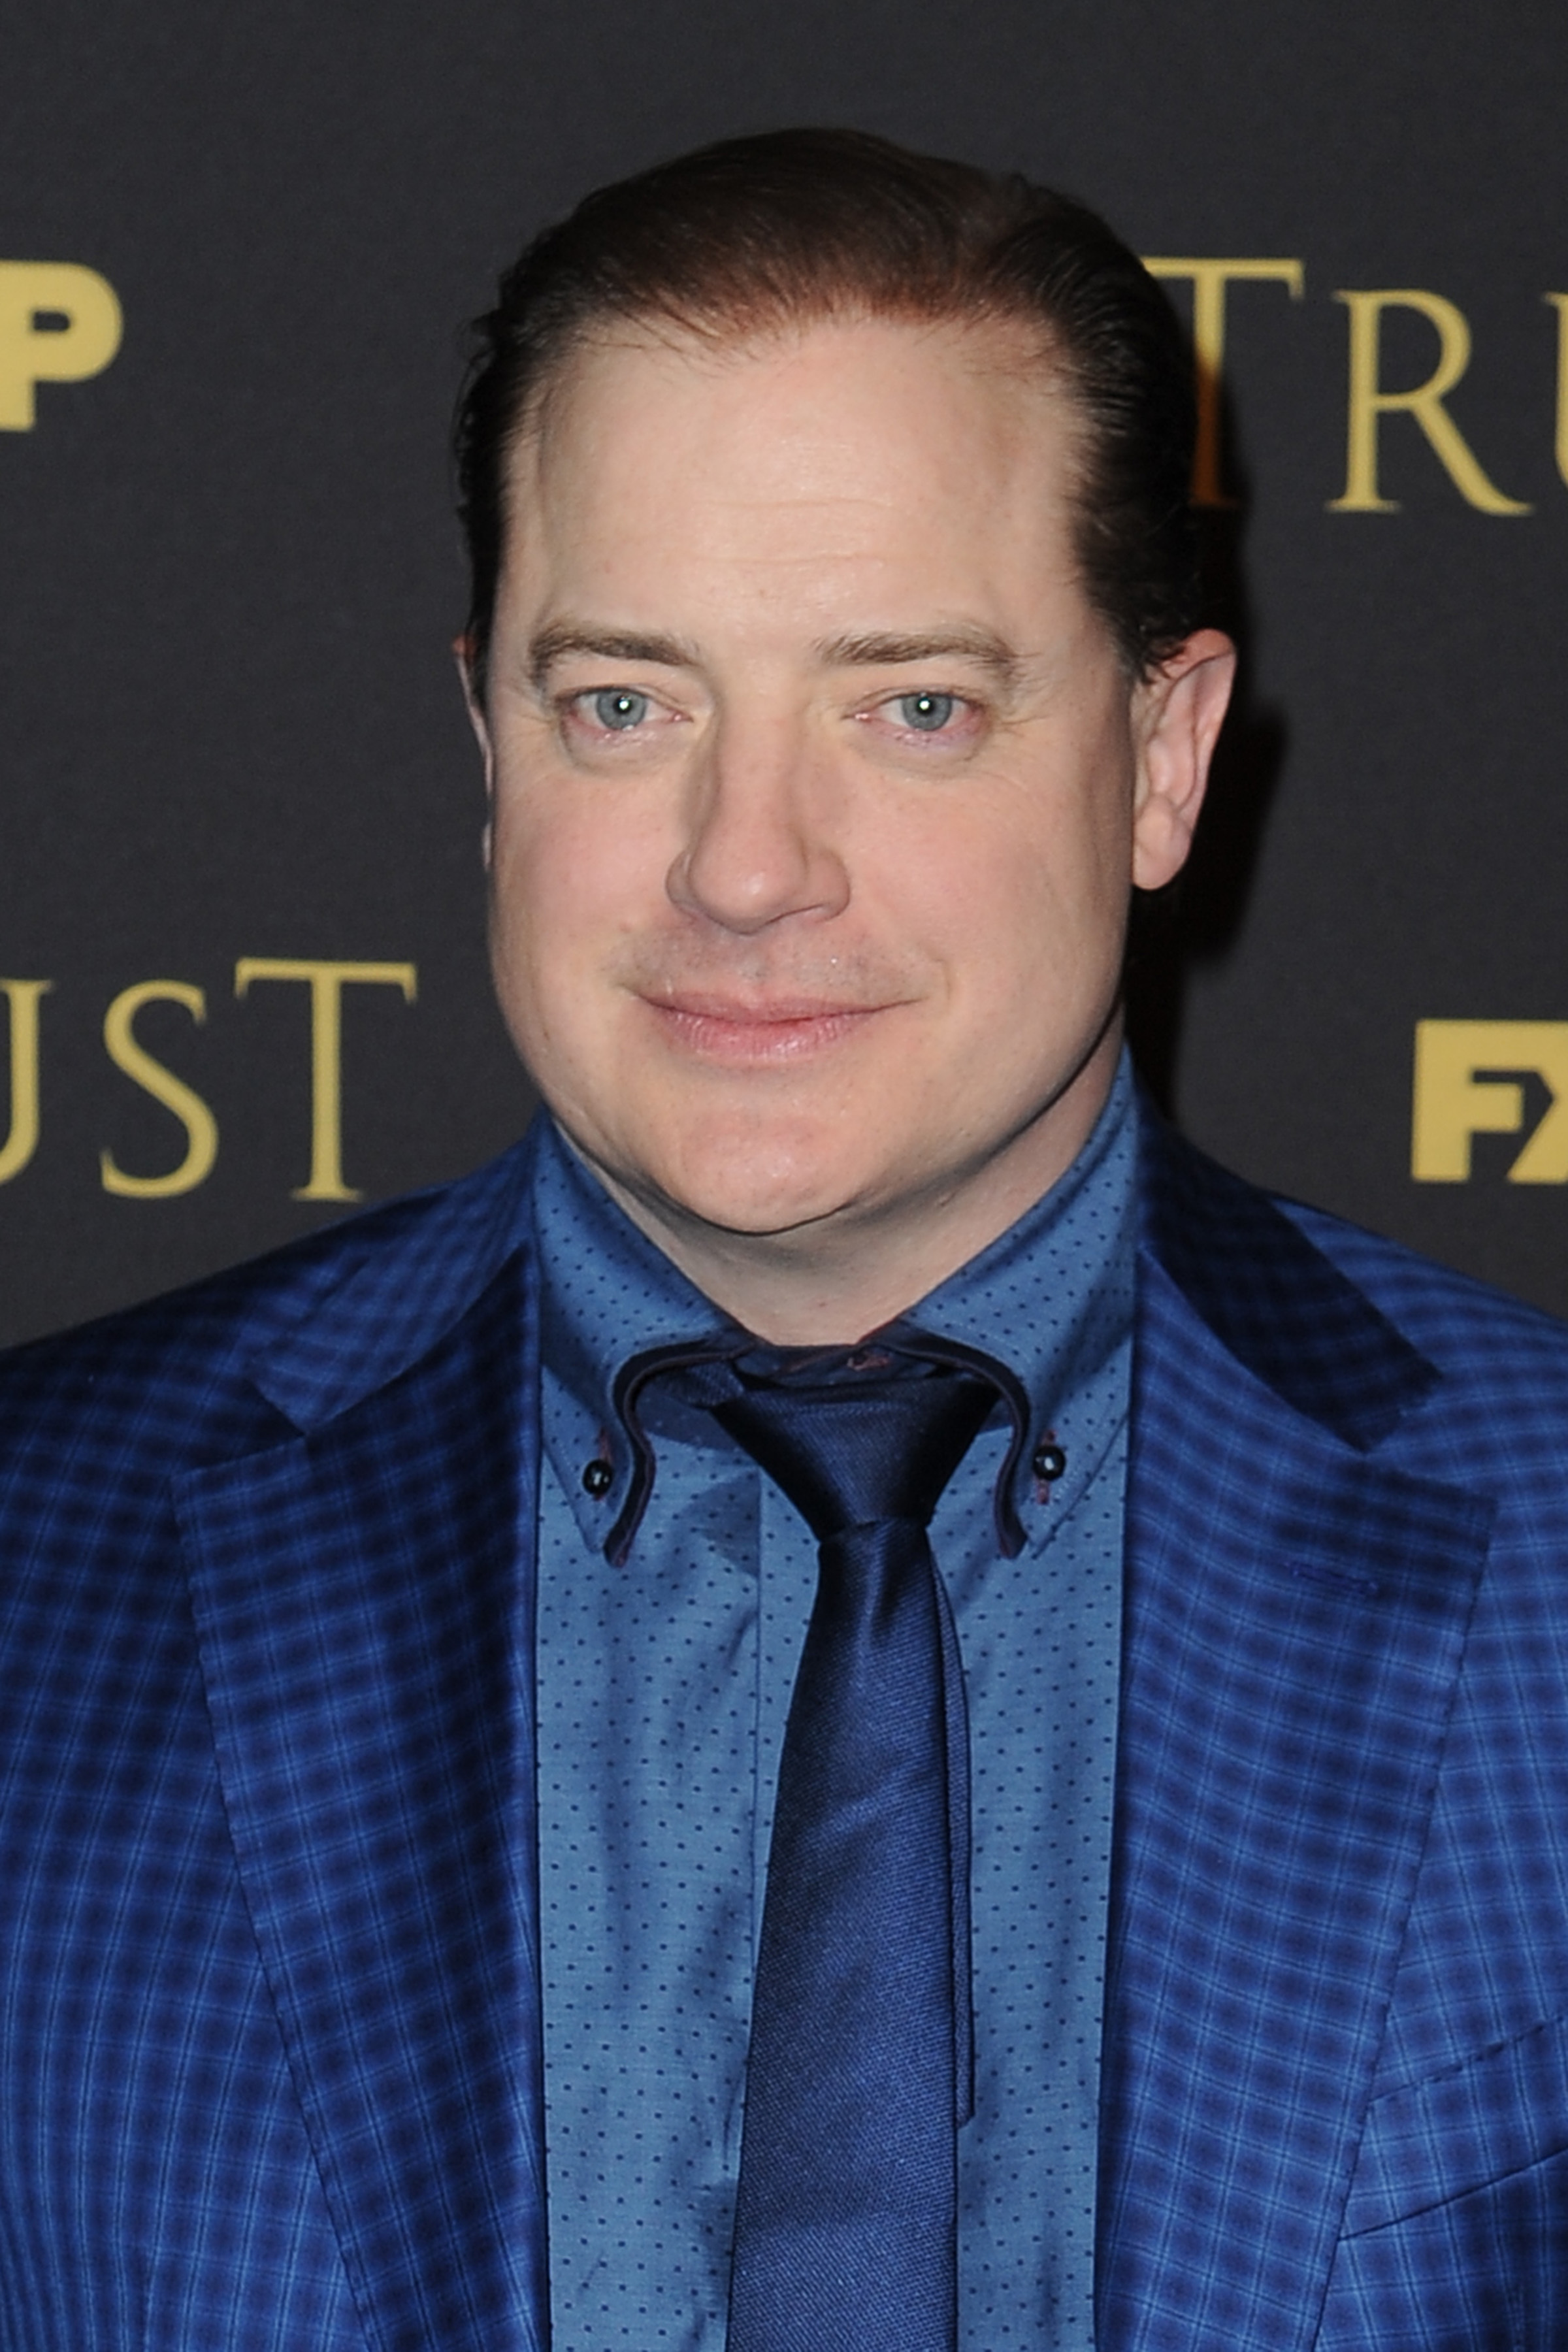 Brendan Fraser - How his life has changed | Gallery